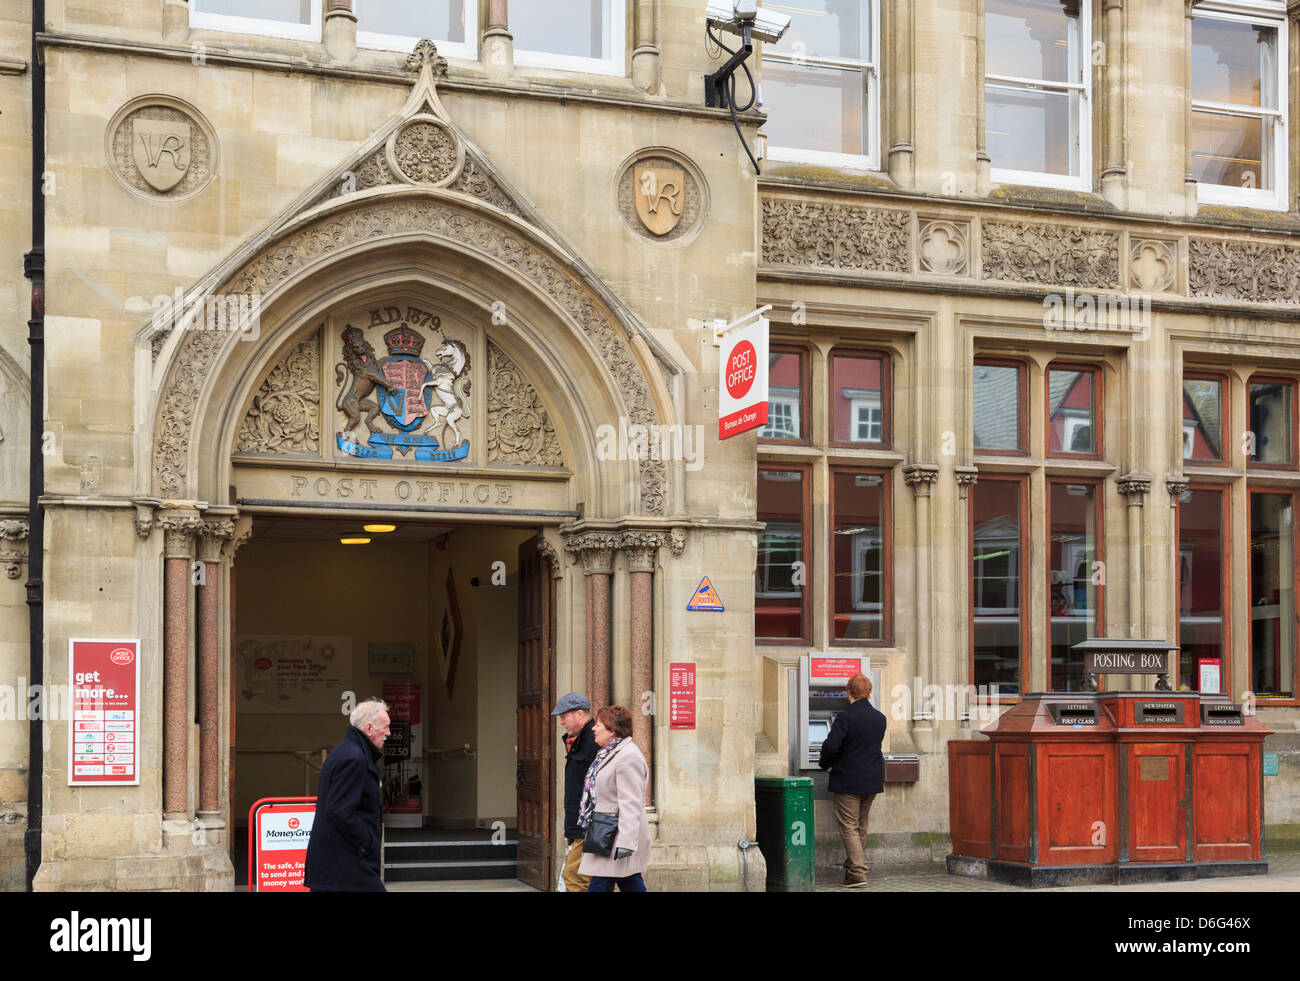 Old postboxes outside 19th century Victorian main Post Office building 1879 with crest and VR above the door. Oxford - Stock Image